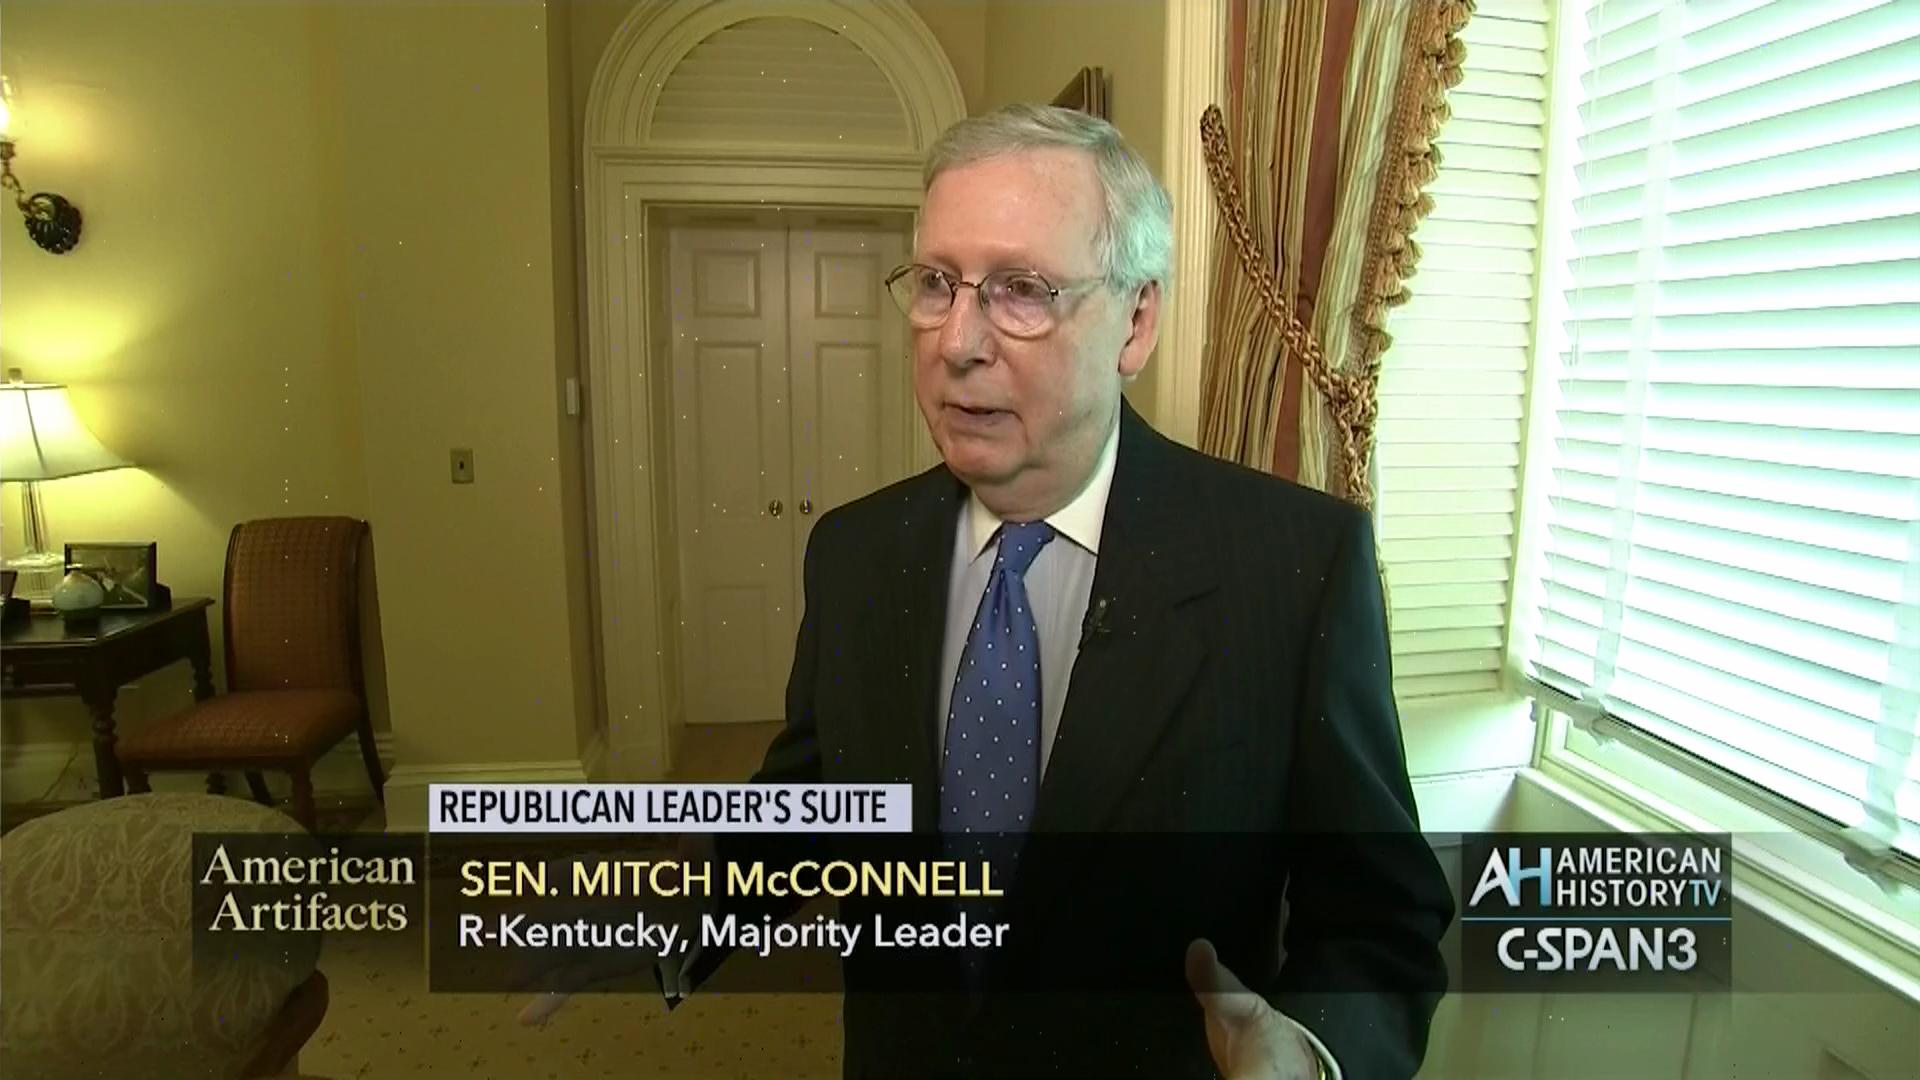 senator mcconnell republican leader's suite, may 9 2016 | c-span